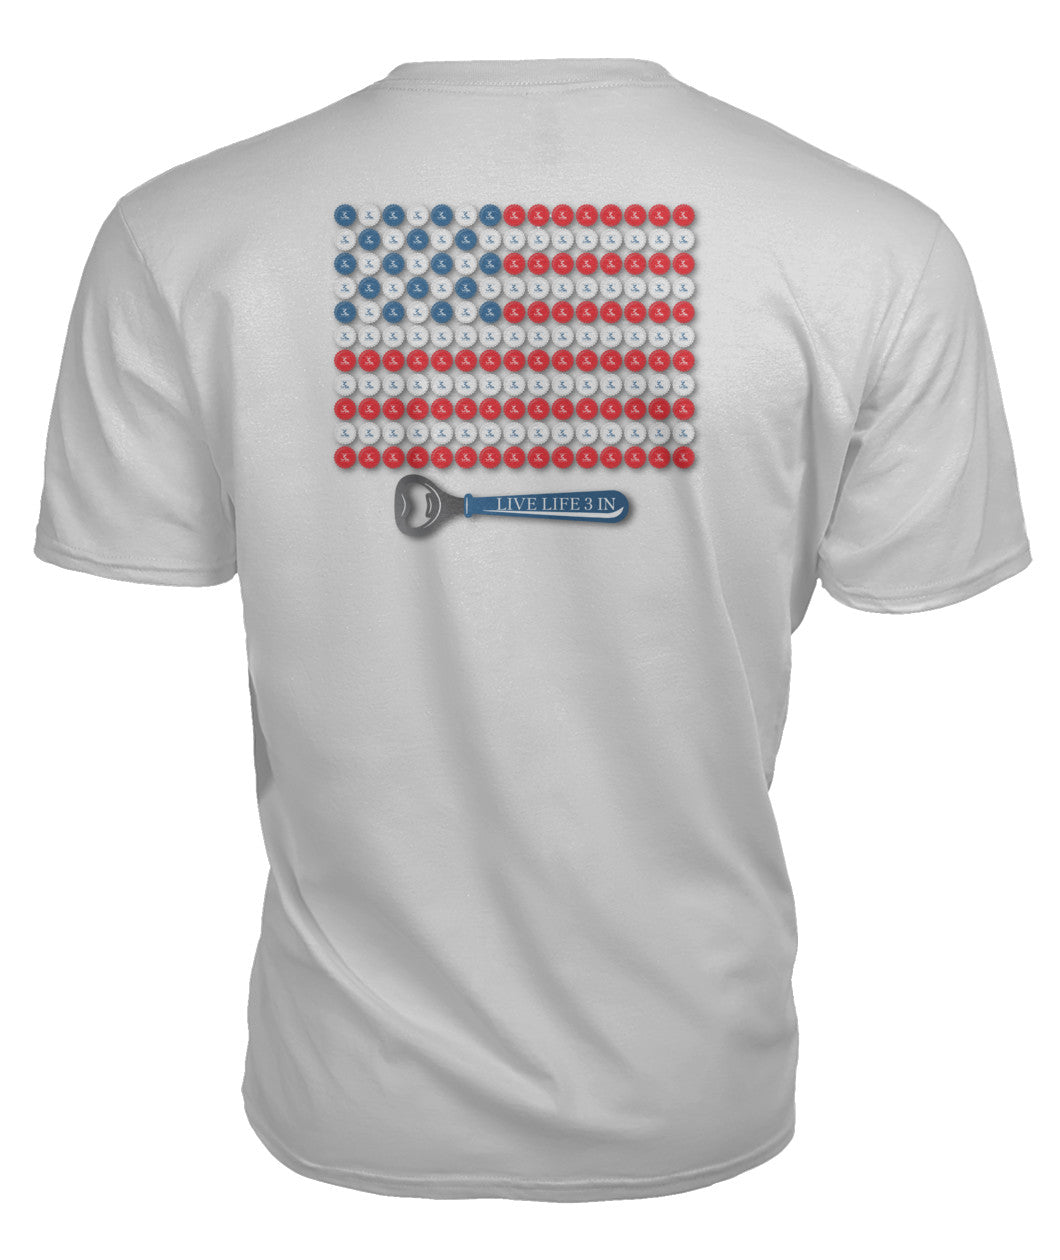 1776 Short Sleeve Shirt